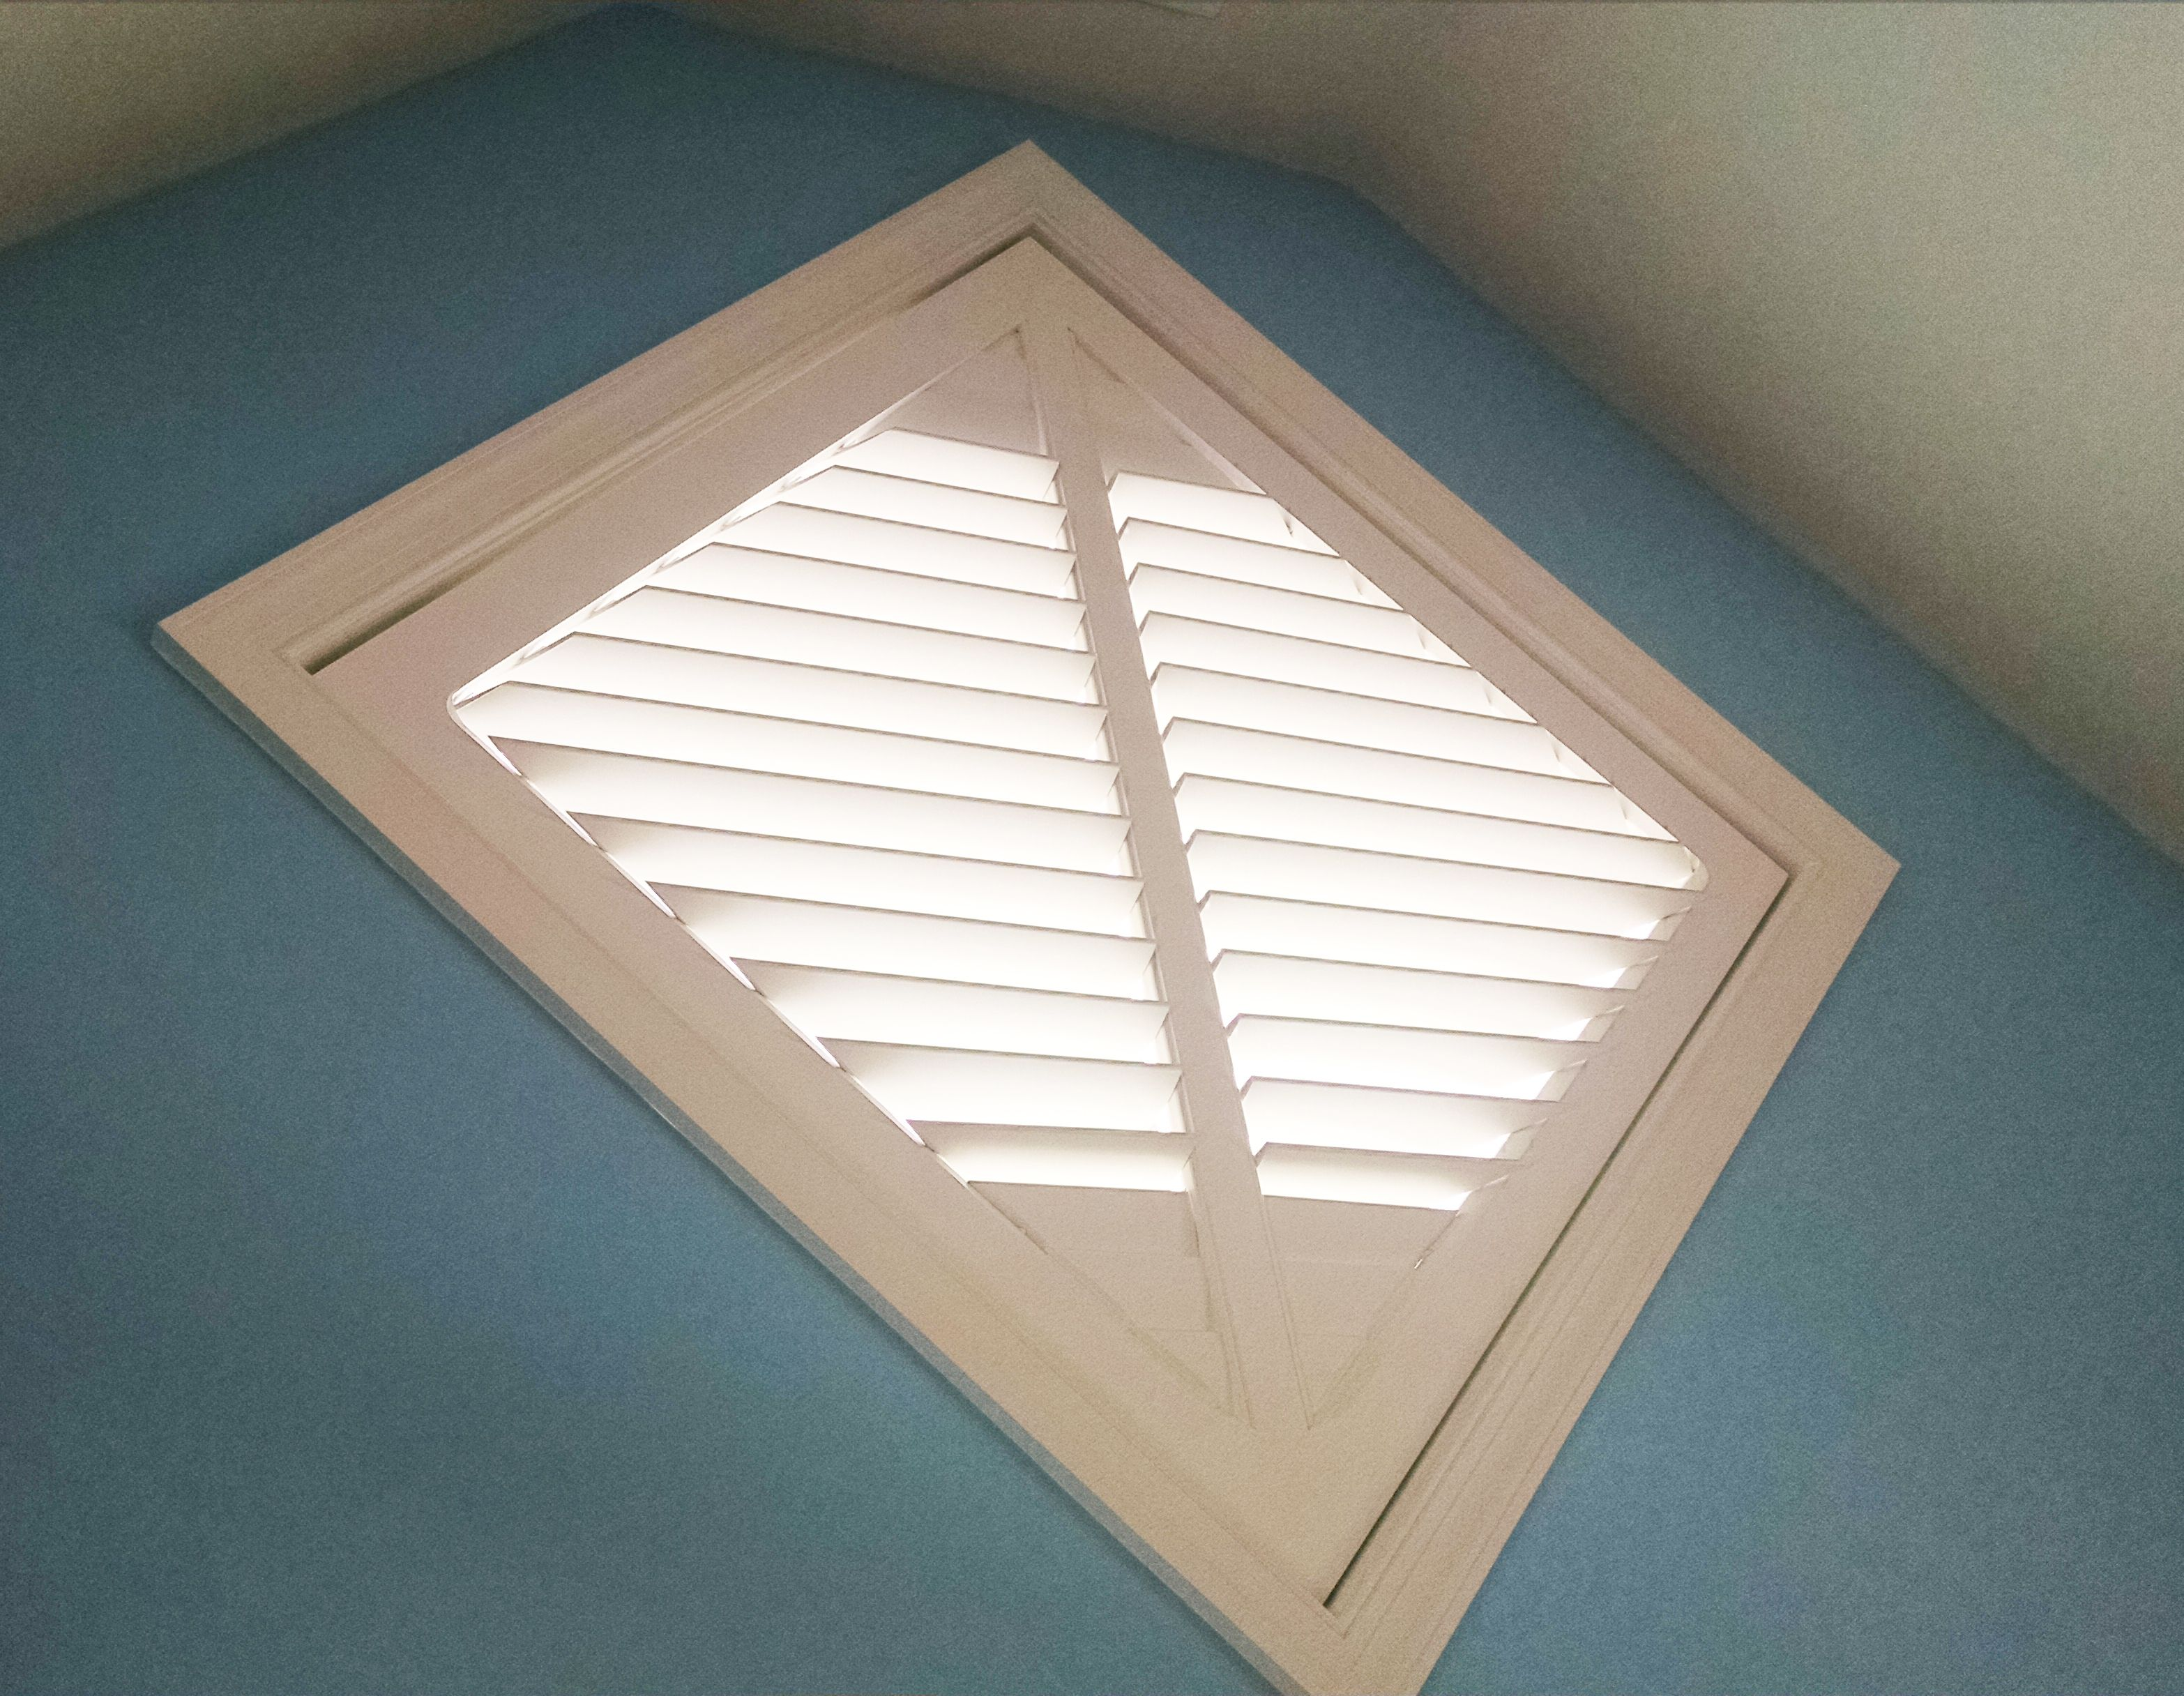 Diamond Shaped Window Covered With Plantation Shutters By